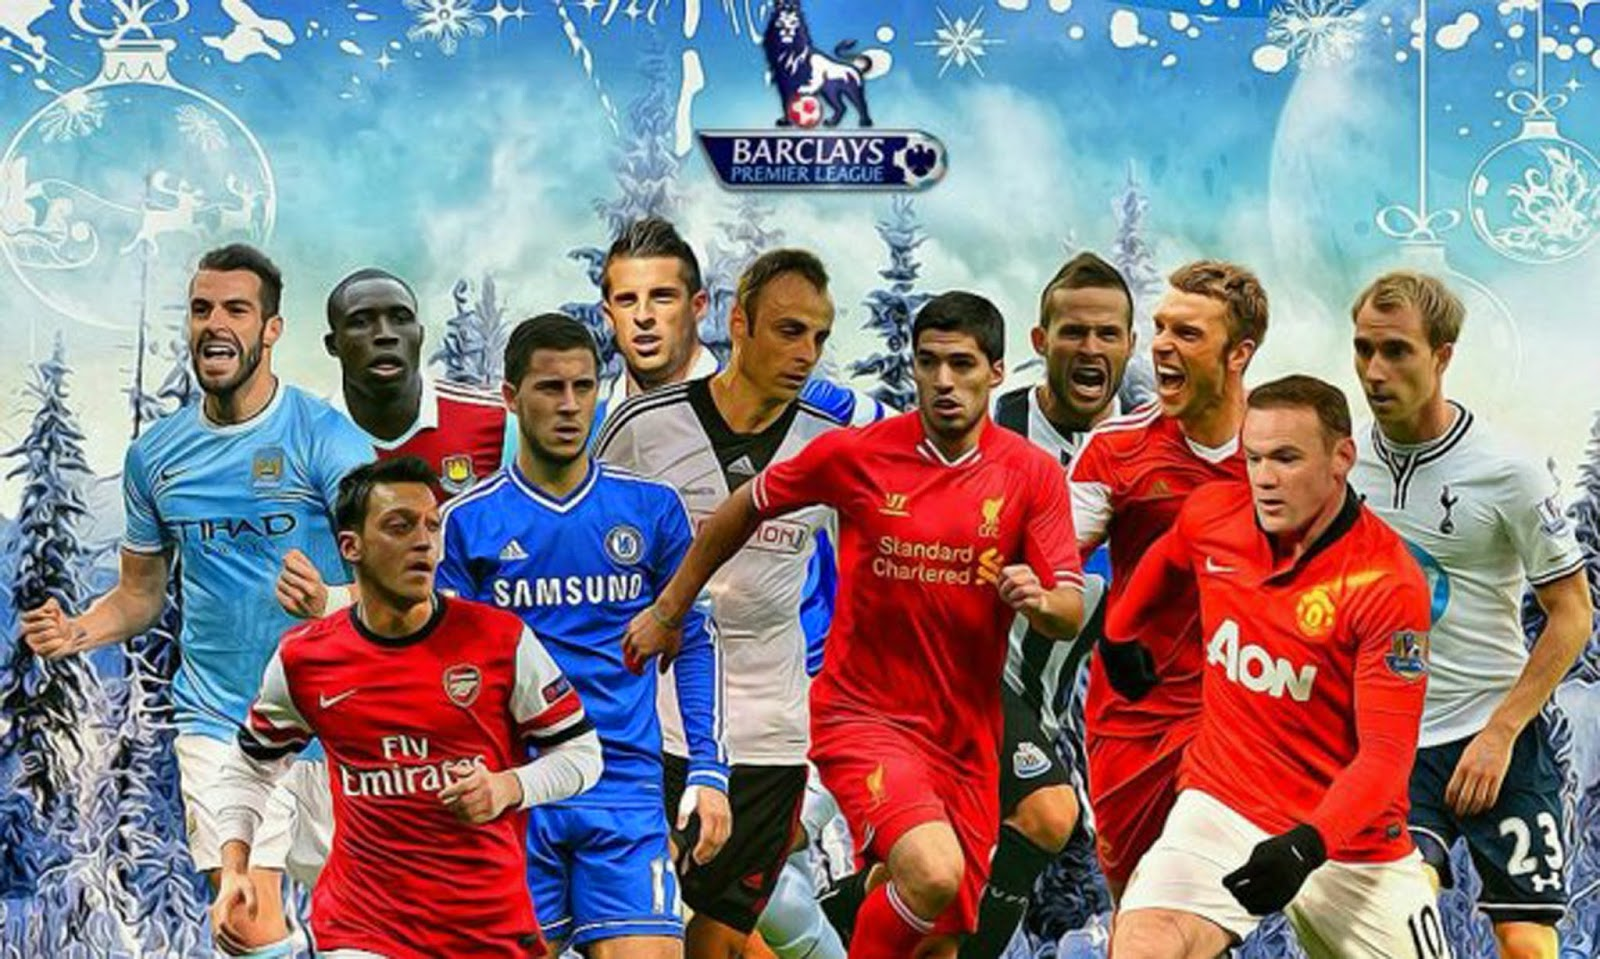 Pics Wallpaper HD: Happy Boxing Day: Boxing Day Barclays